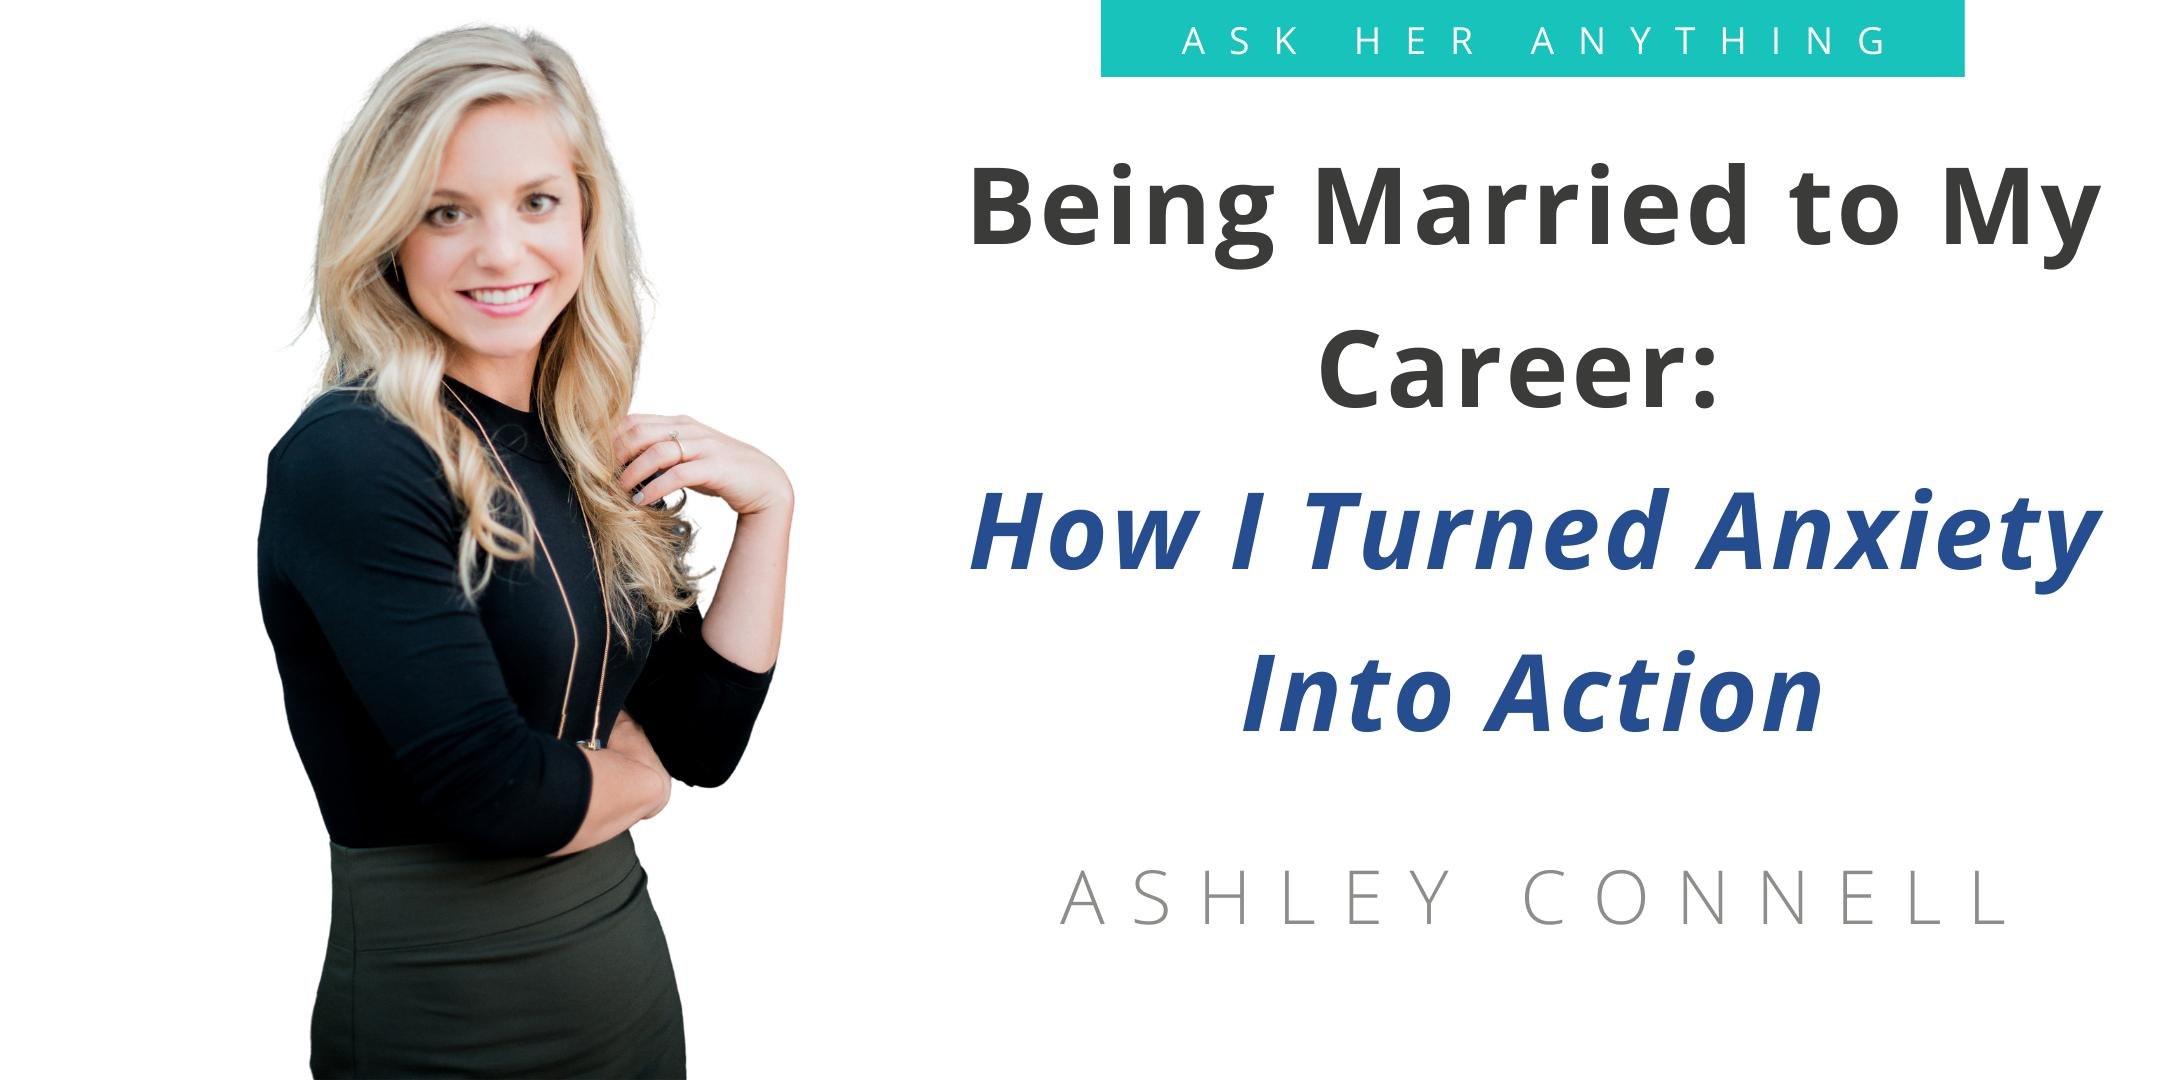 Being Married to My Career: How I Turned Anxiety Into Action